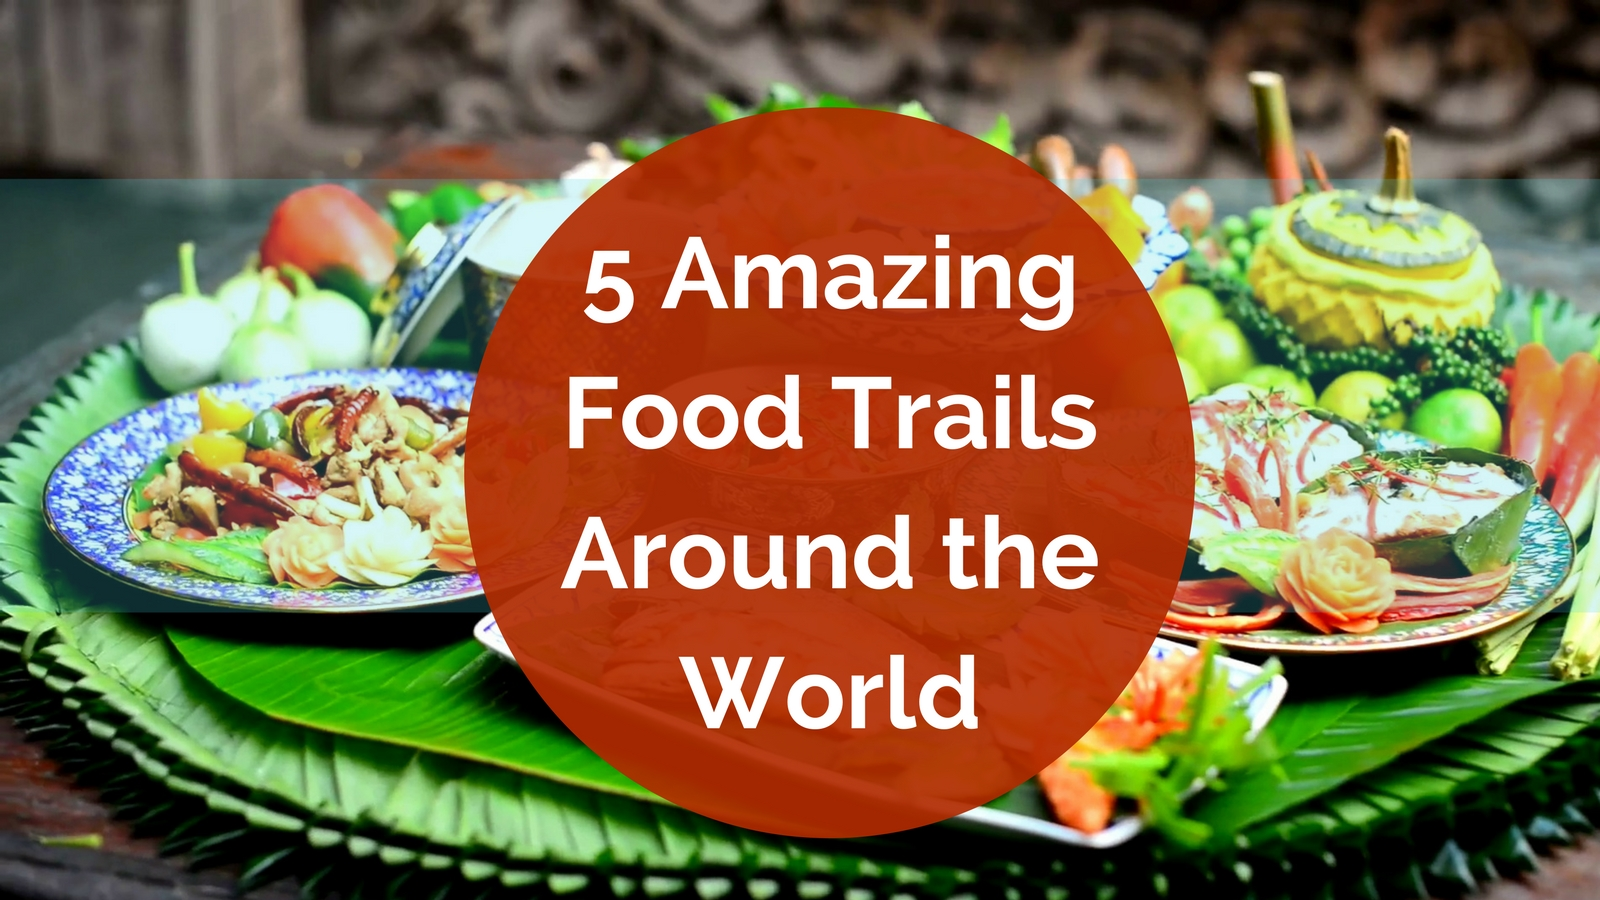 5 Food Trails Around the World Every Foodie Should Go on